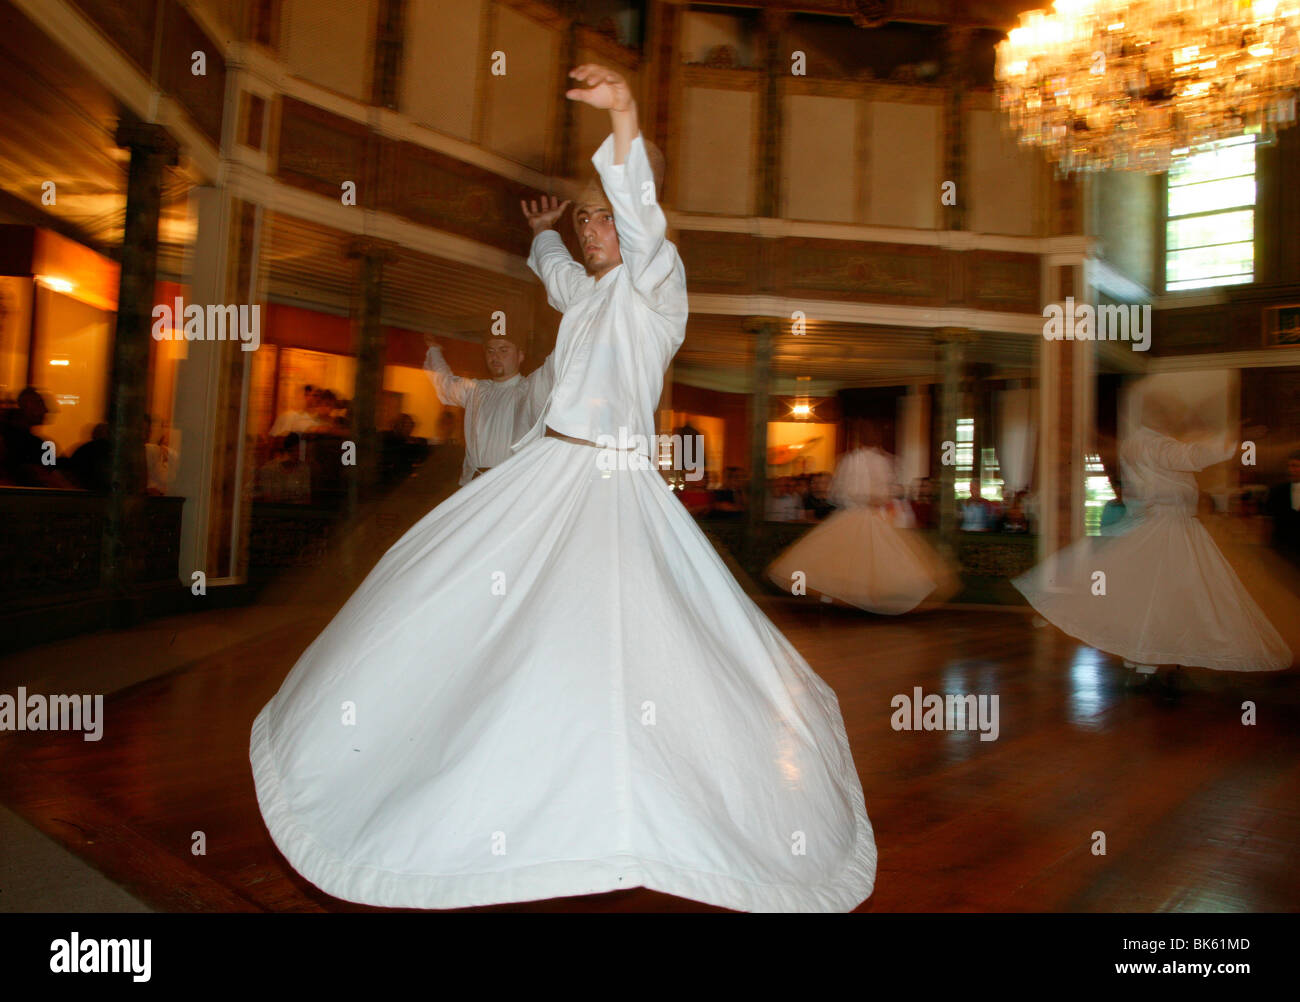 Whirling dervishes at Uskudar's convent, Istanbul, Turkey, Europe Stock Photo